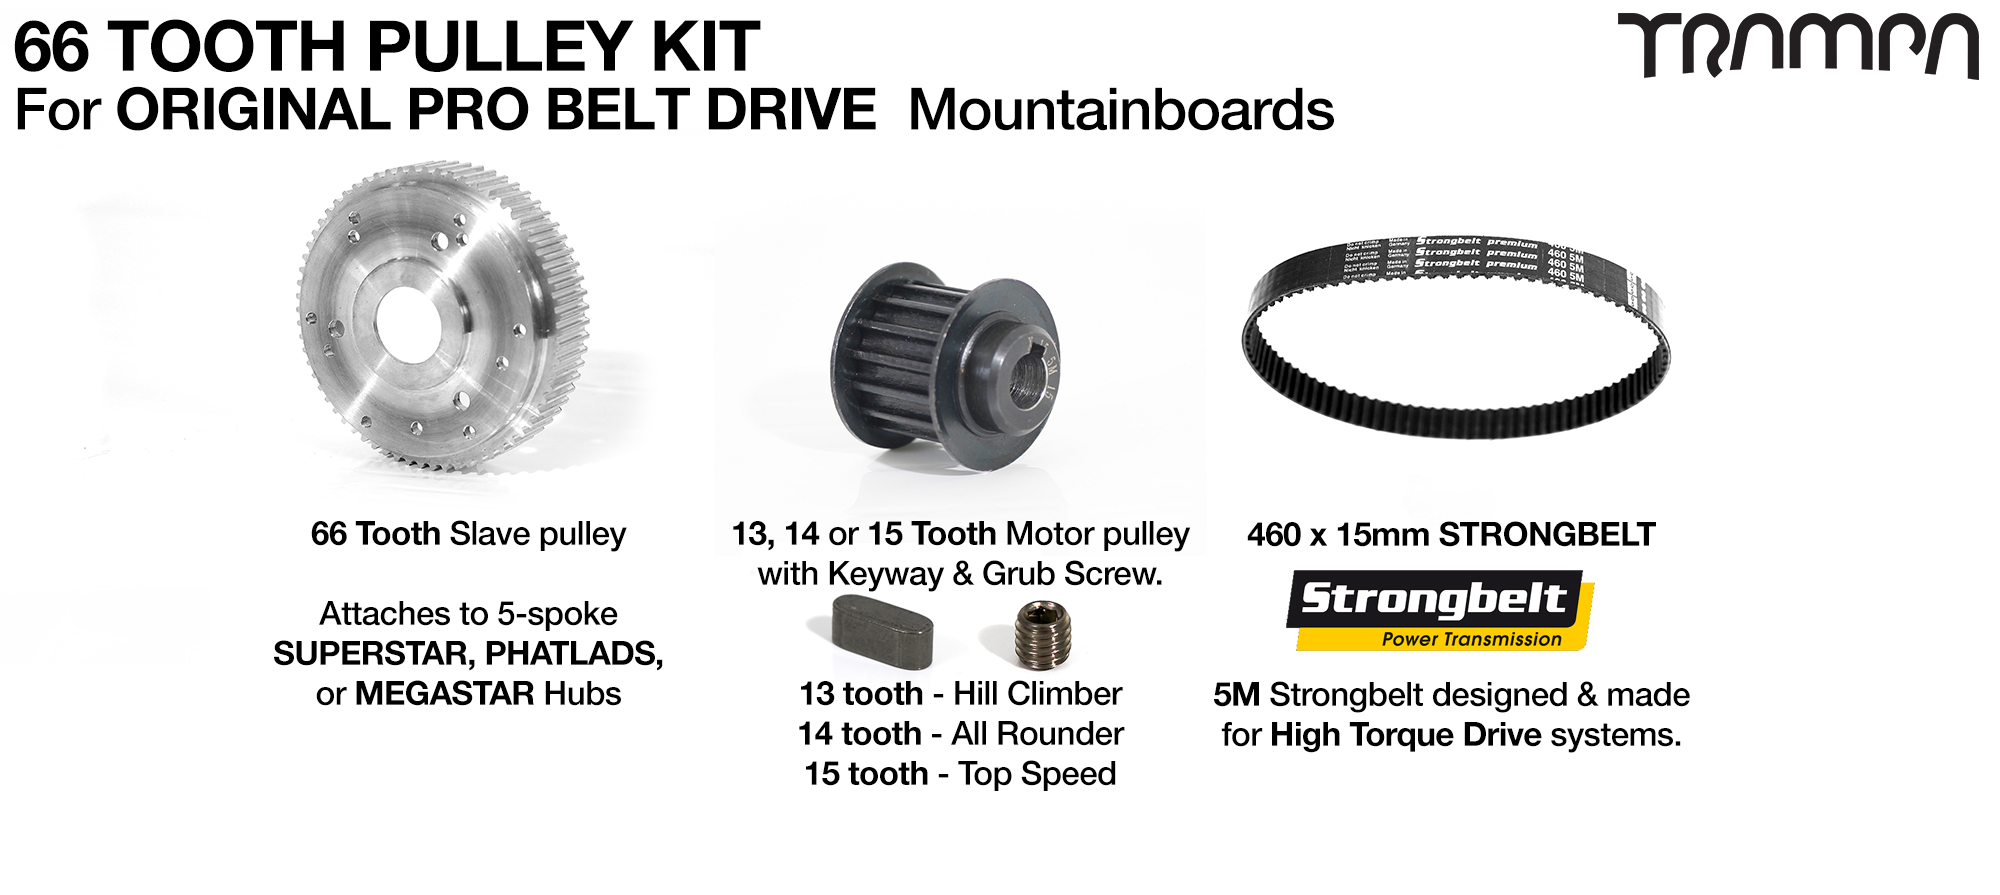 Complete MOUNTAINBOARD Pulley Kit with 15mm STRONGBELT for SUPERSTAR wheels